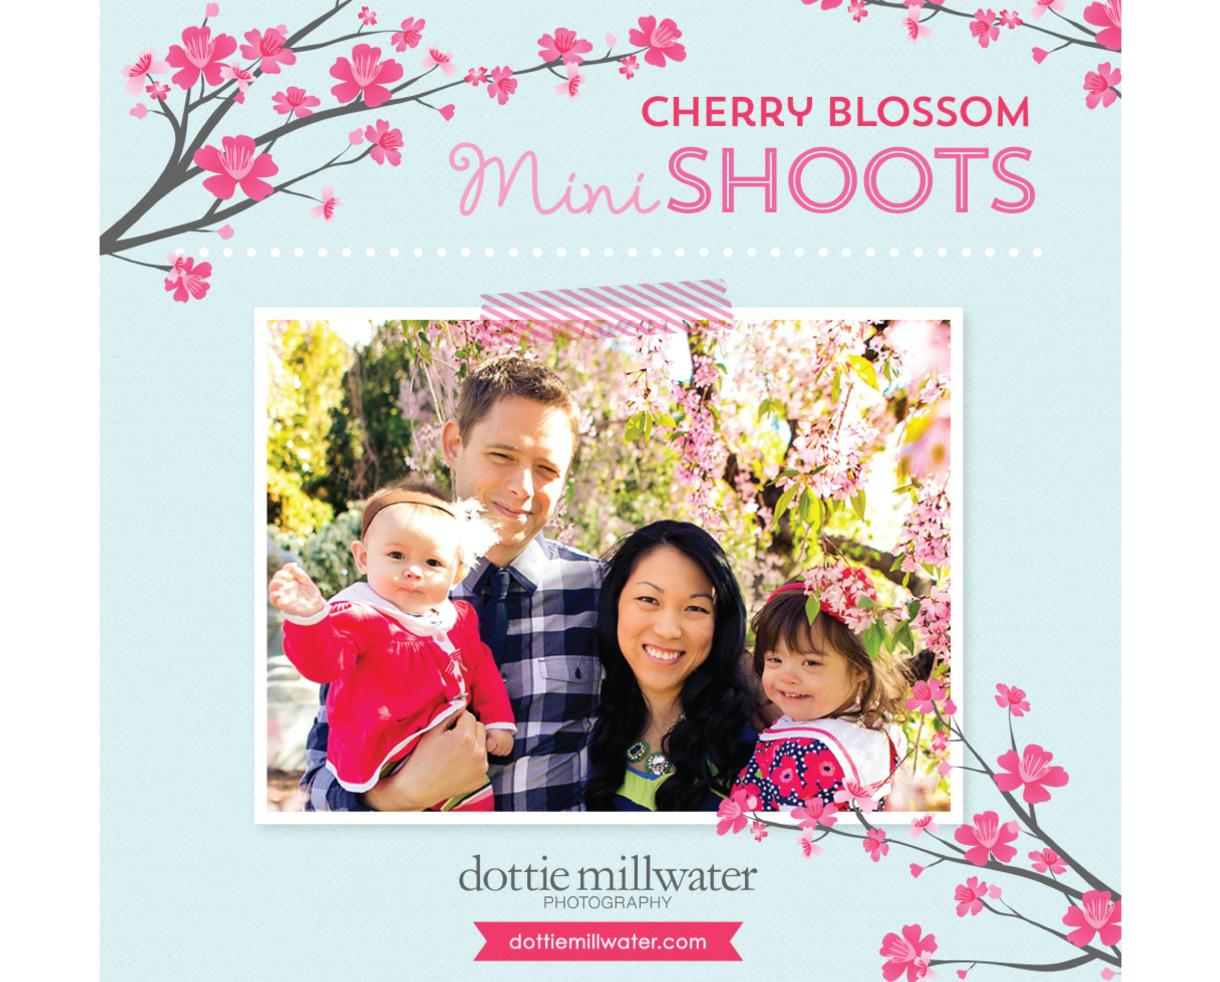 $150 for Cherry Blossom Family Portrait Session & ALL Digital Images by Dottie Millwater Photography (50% Off)